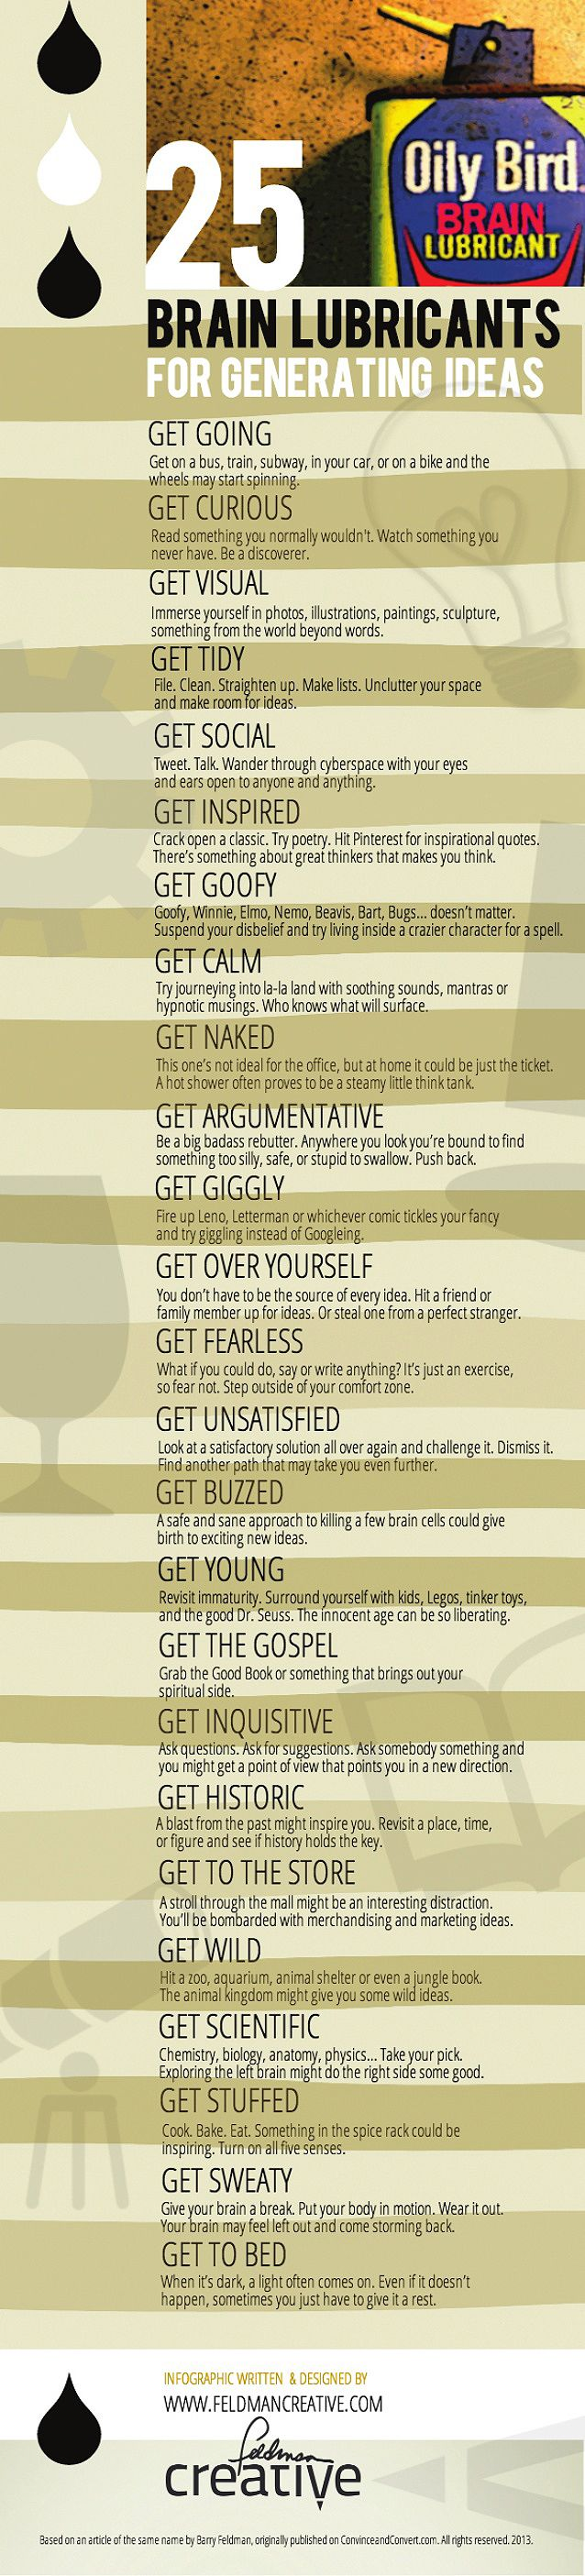 These 25 brain lubricants can help you coax your mind into generating creative…